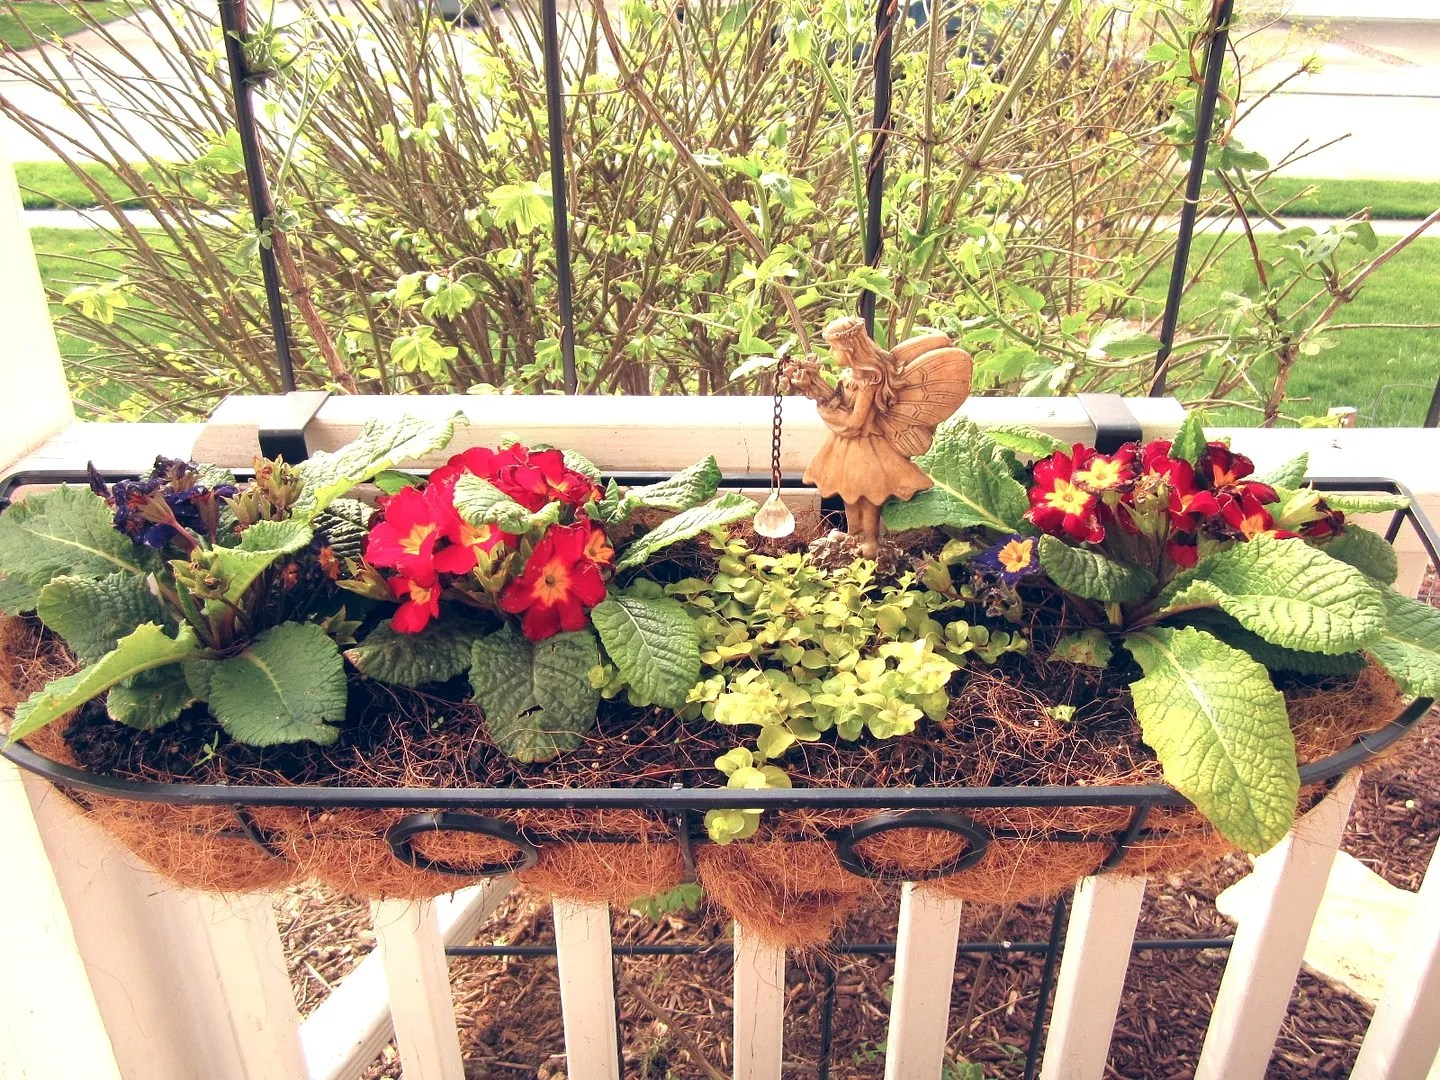 Flower Pots on a Budget / MyUrbanGardenOasis